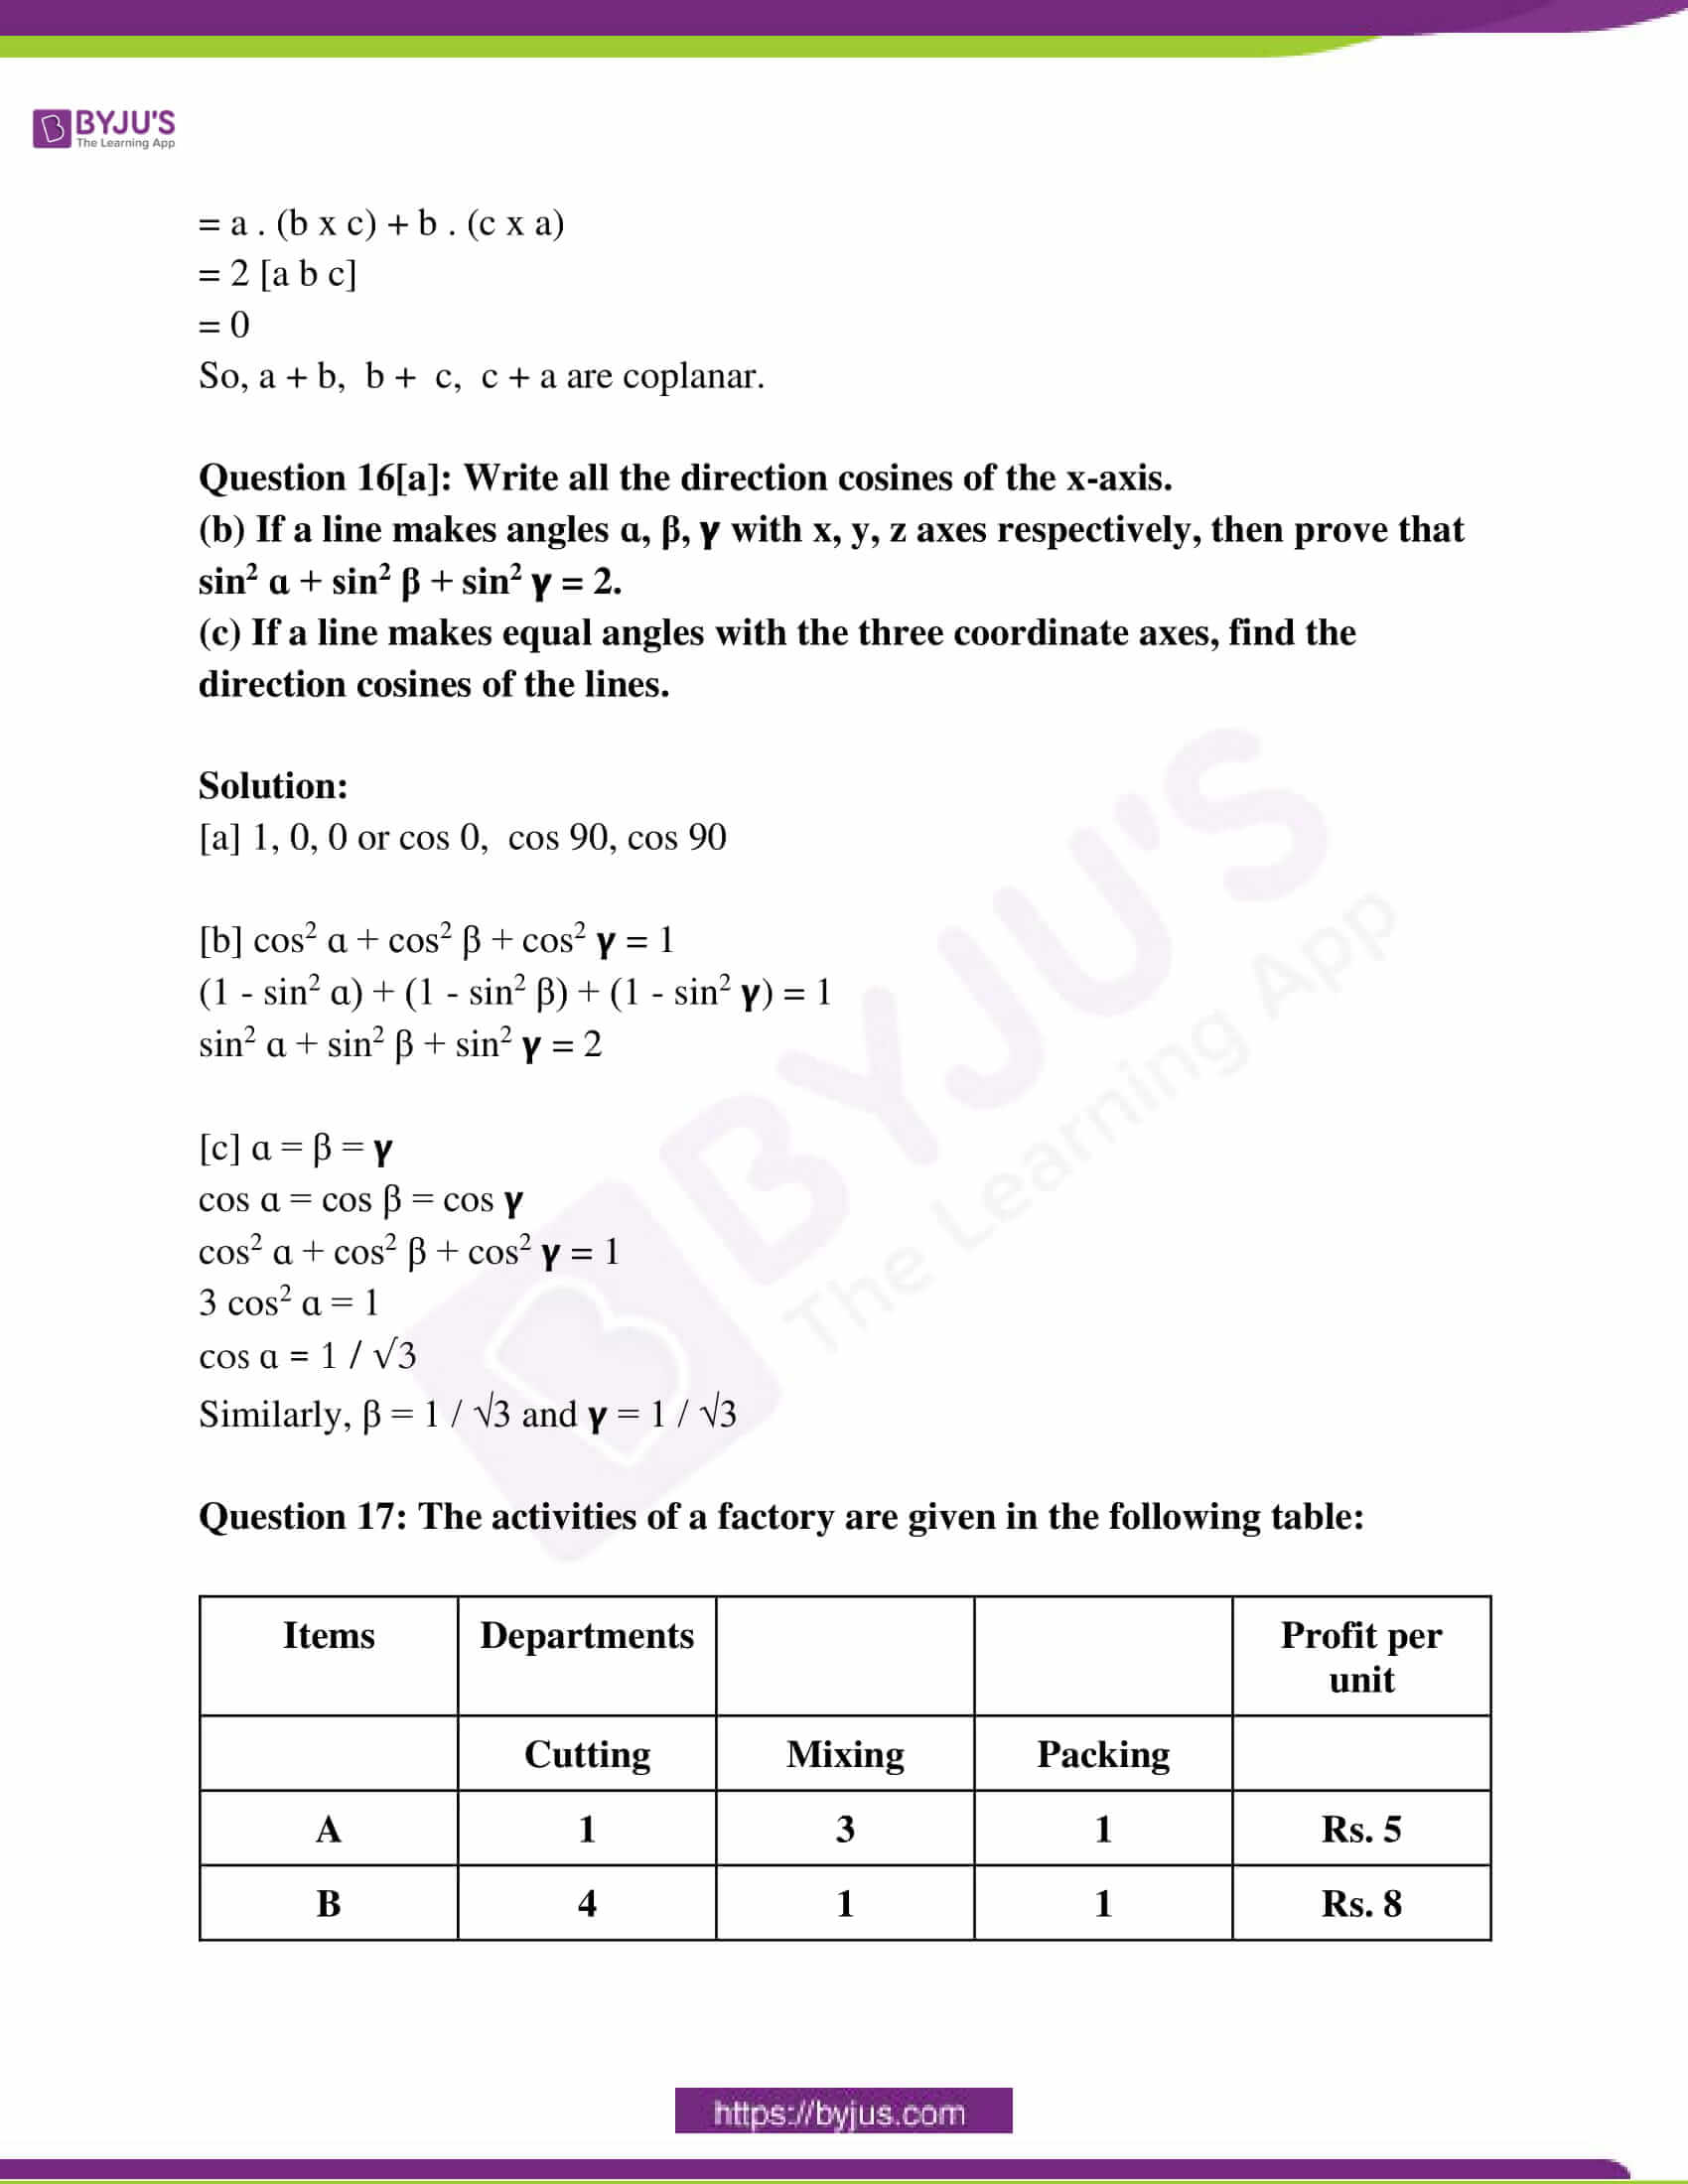 kerala class 12 examination question paper solutions march 2019 11